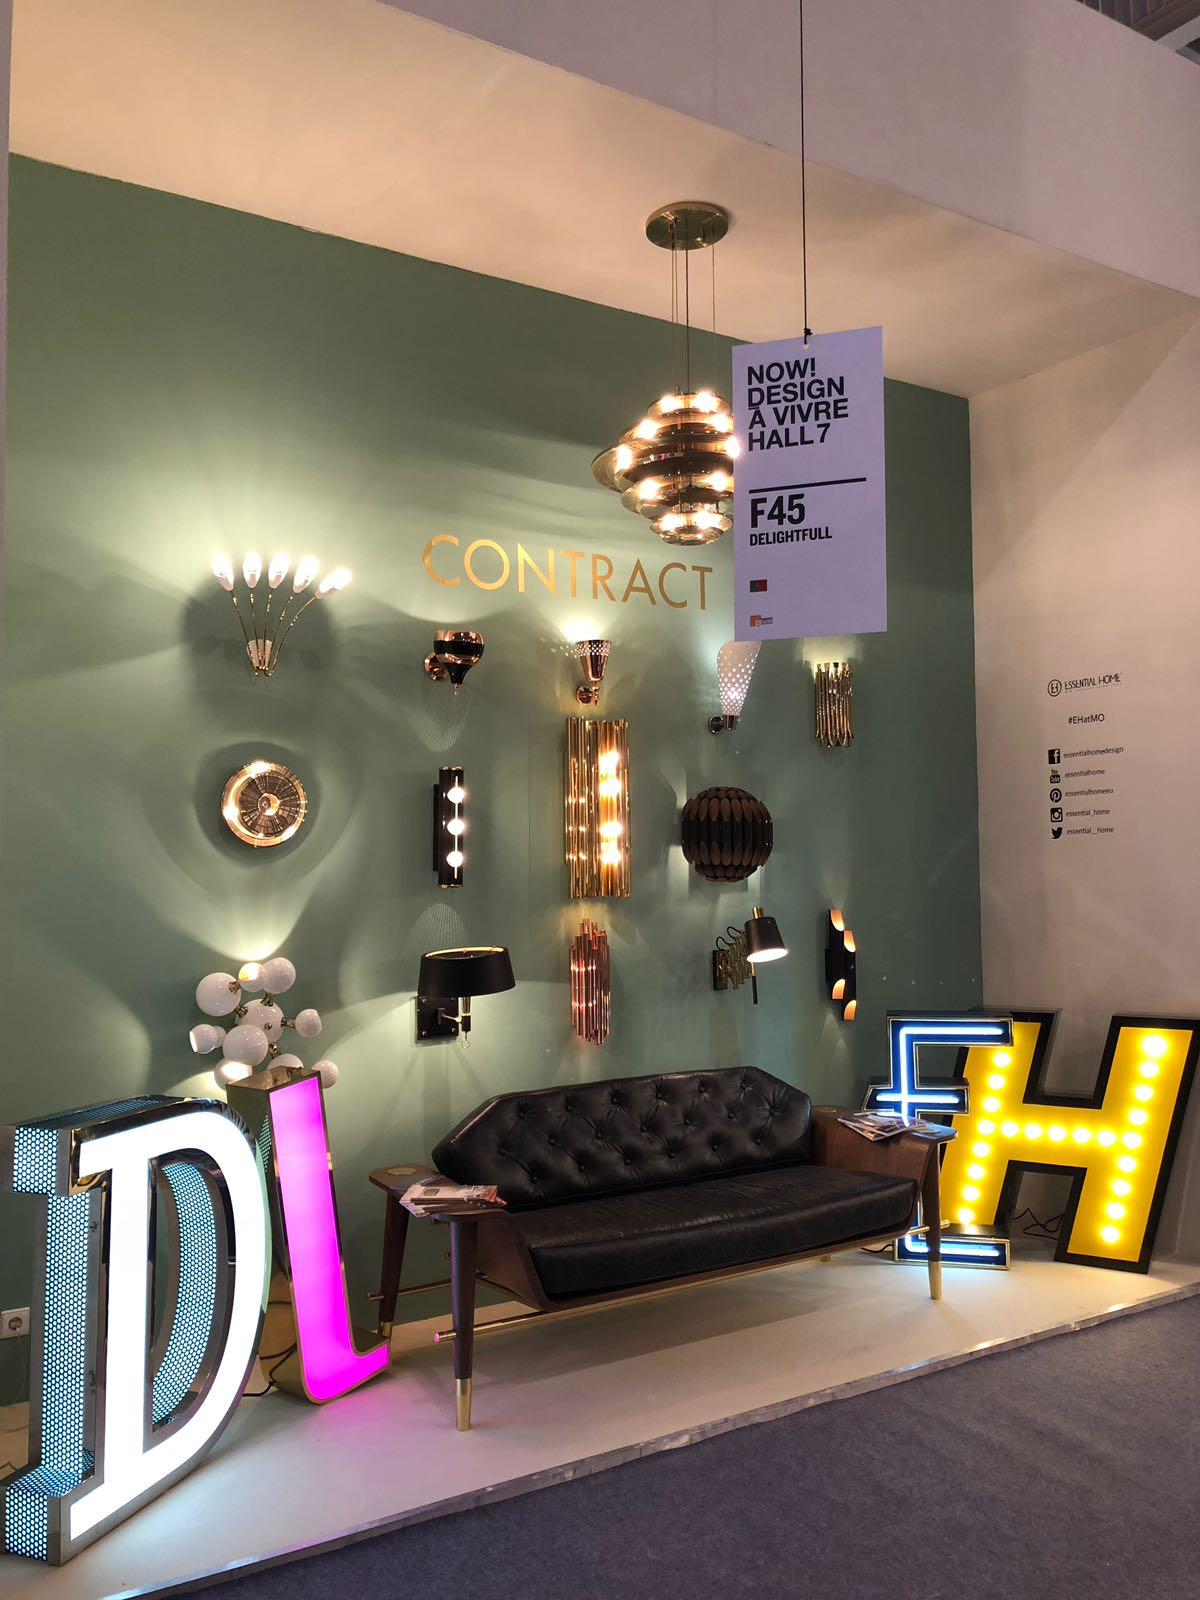 Maison et Objet 2018 The Pieces You Need To Have A Look At 5